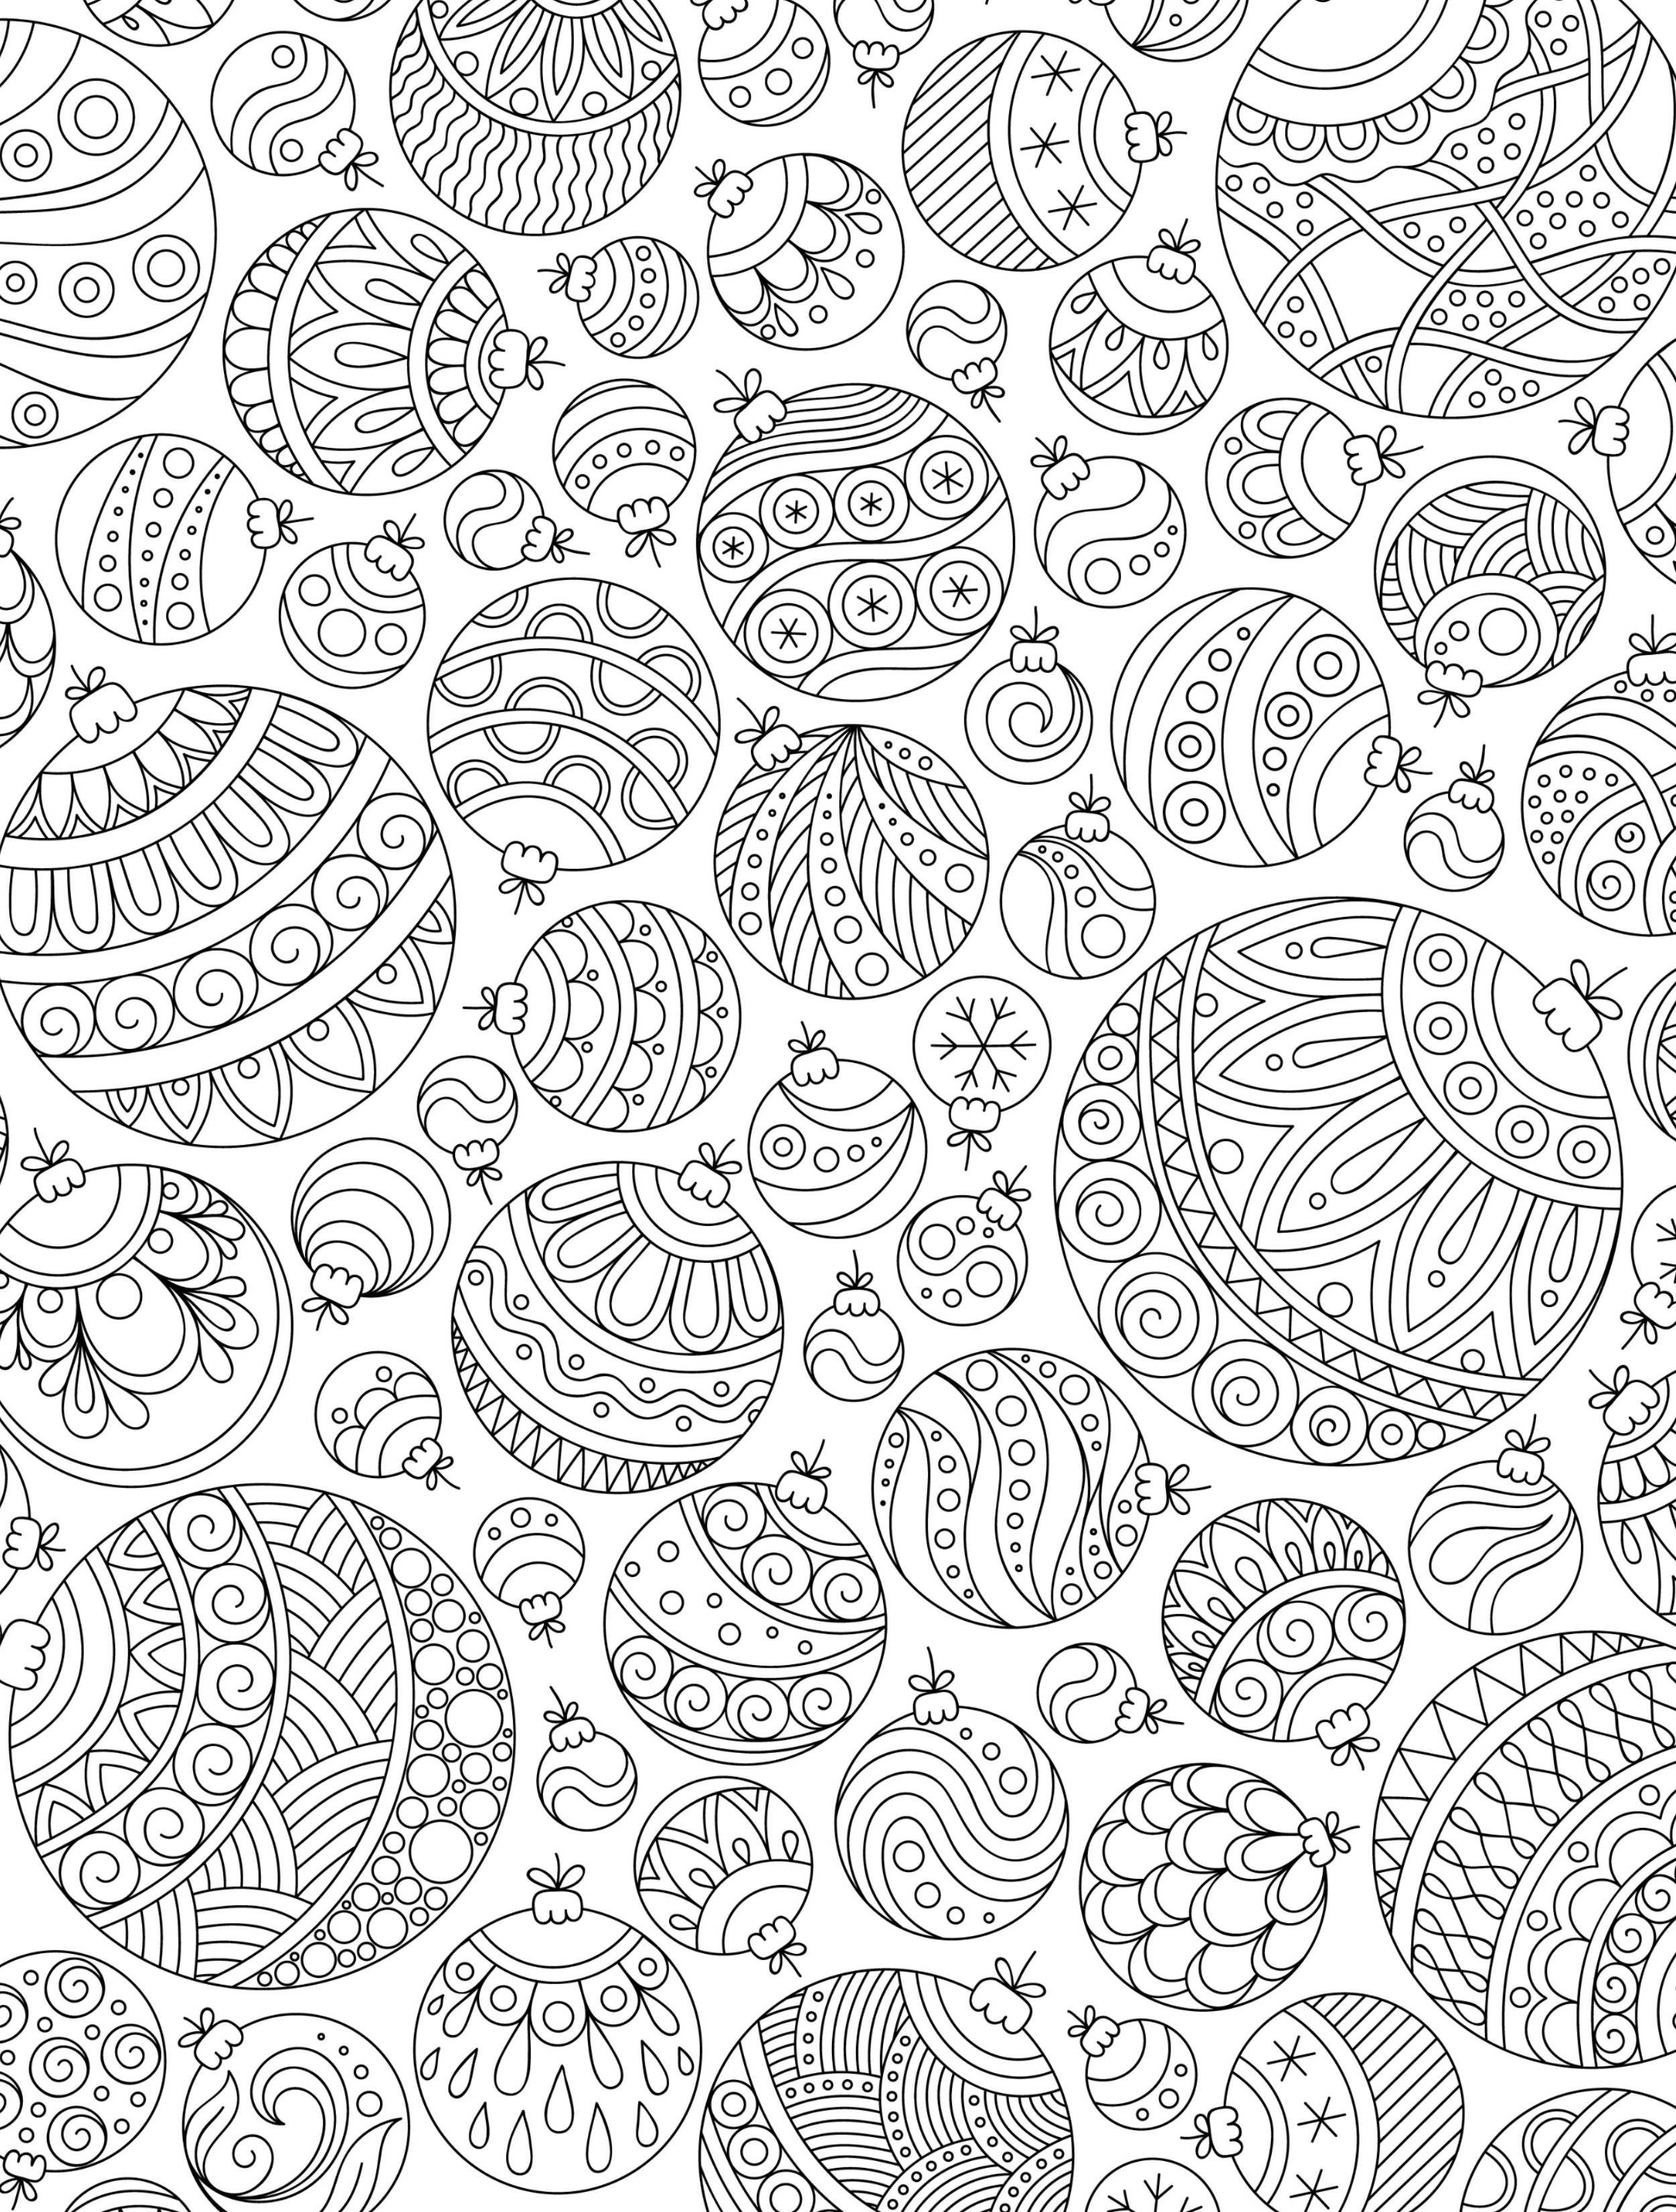 15 CRAZY Busy Coloring Pages for Adults Page 11 of 16 Adult